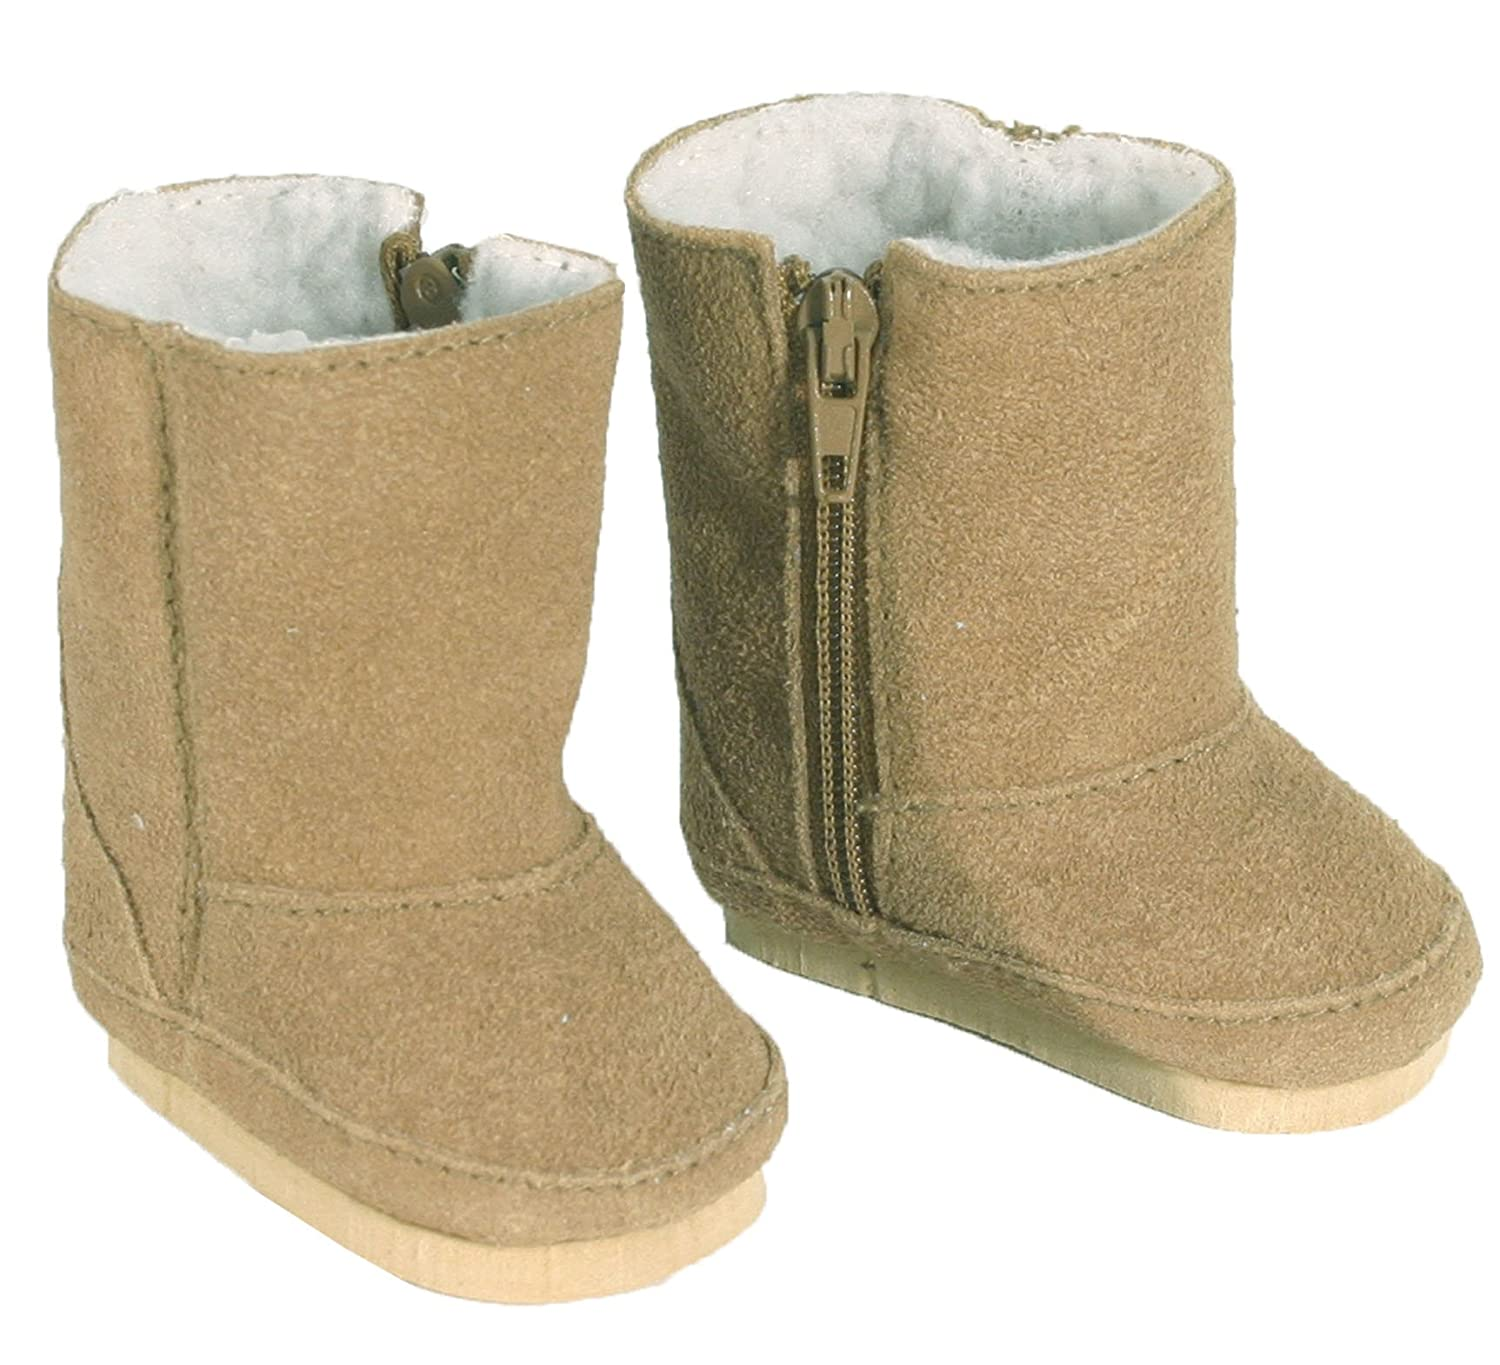 Tan Suede Style Boots Fits 18